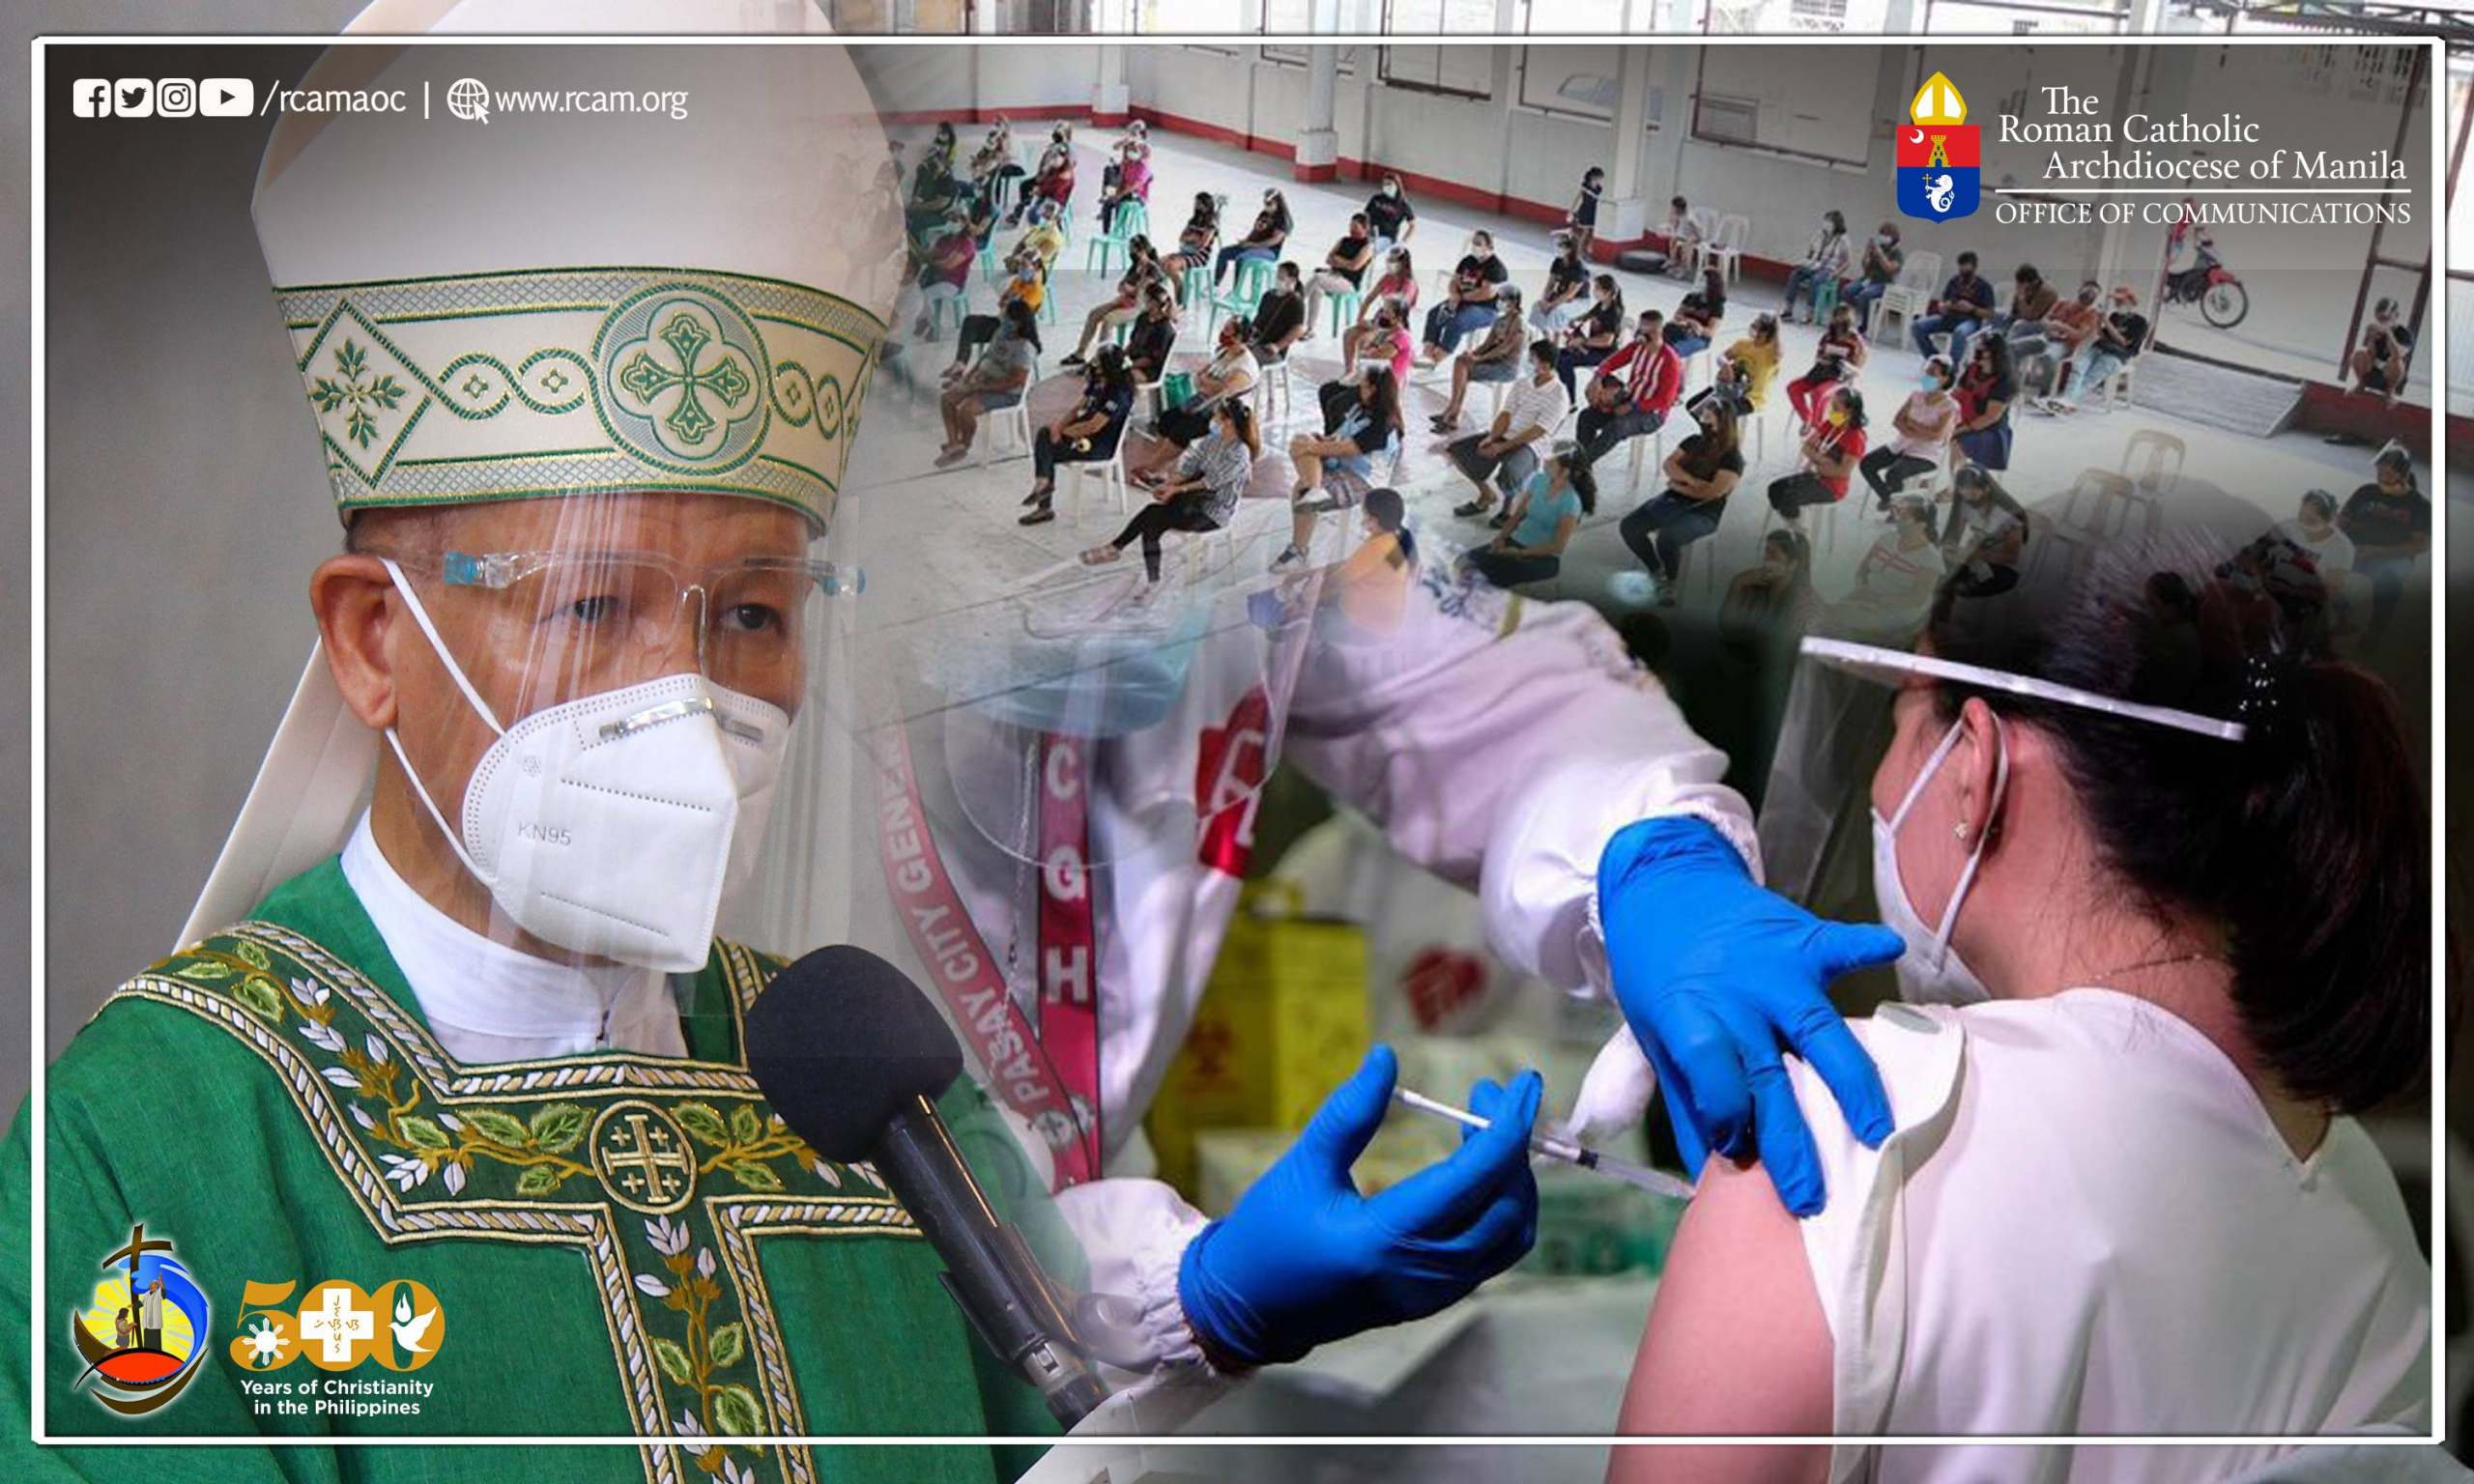 Archbishop Advincula encourages faithful to vaccination, follow strictly protocols